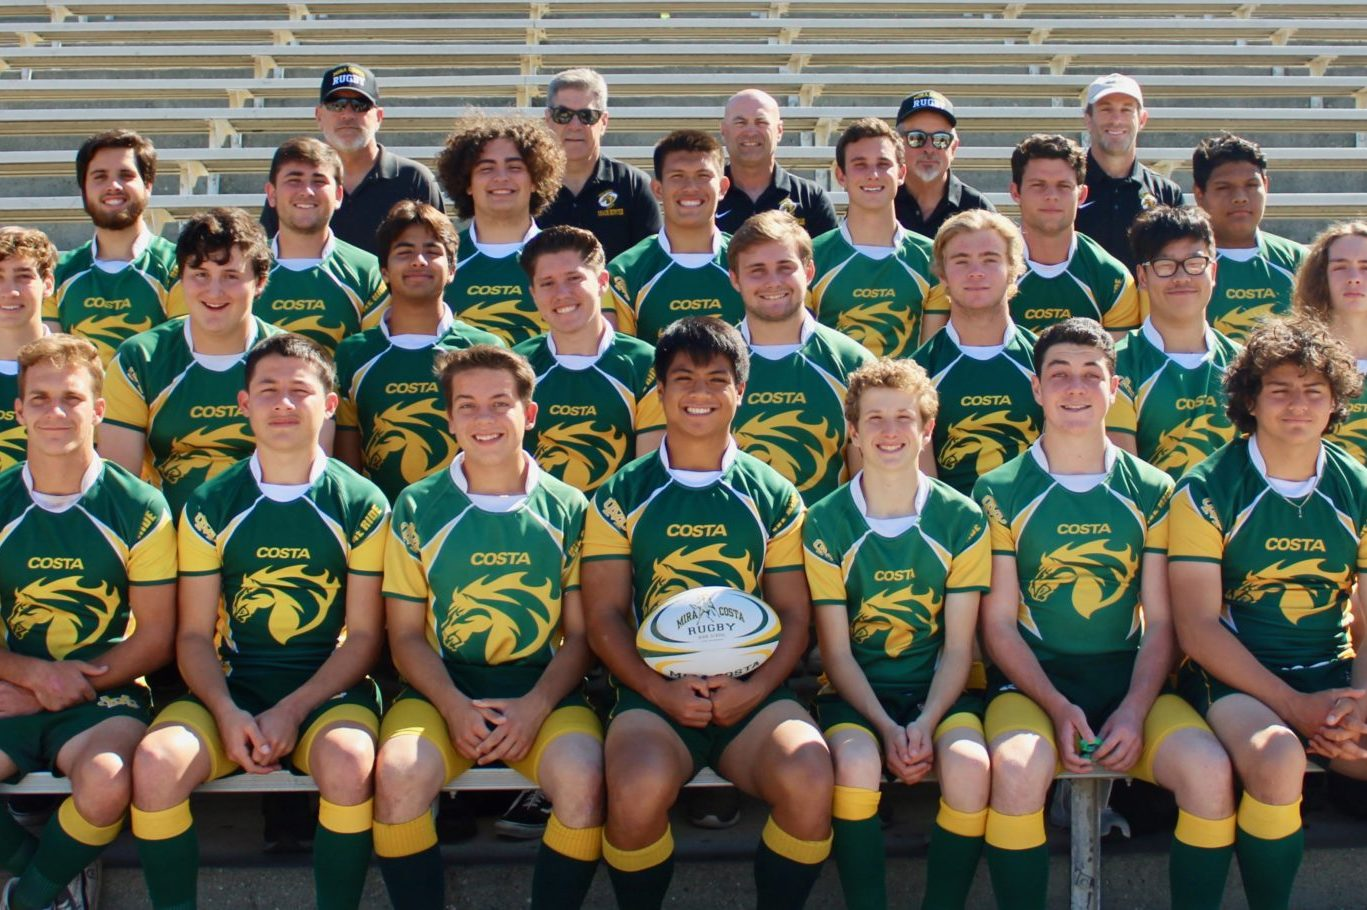 http://www.costarugby.com/wp-content/uploads/2019/04/CostaRugby_BoysTeam_Yearbook2019-e1555791136525.jpg